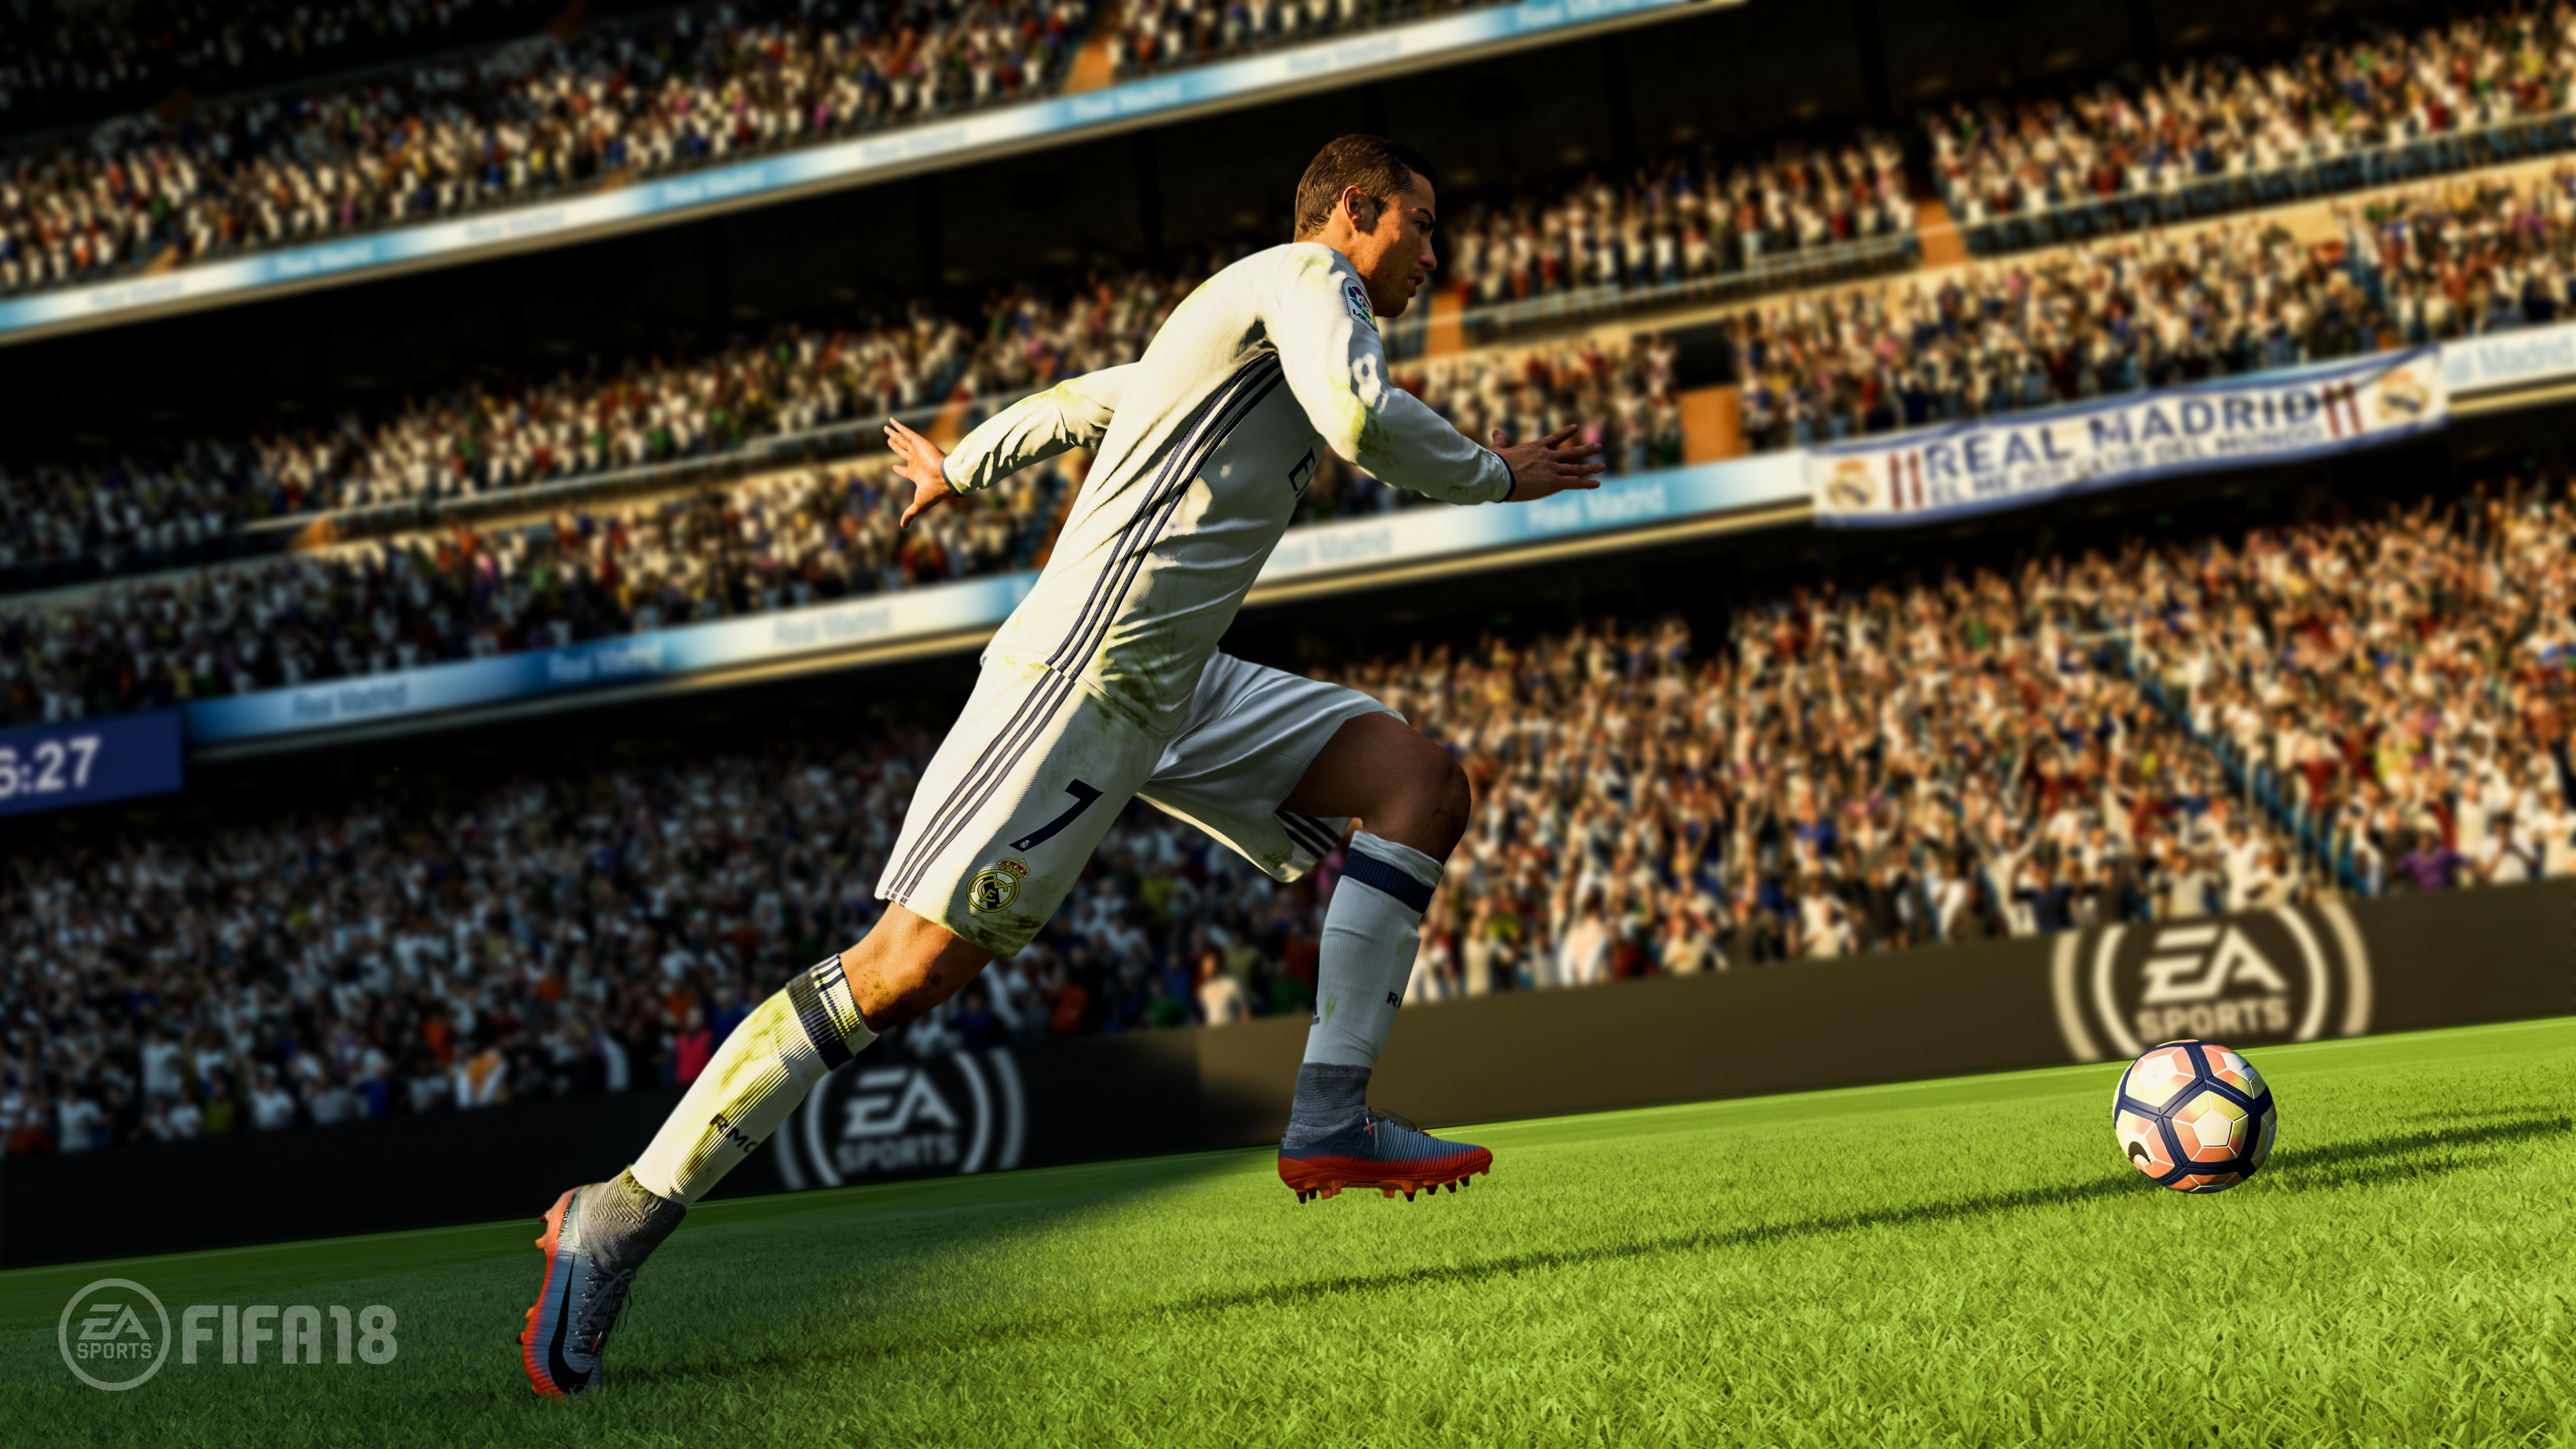 Cristiano Ronaldo sprints with the ball in the FIFA 18 trailer